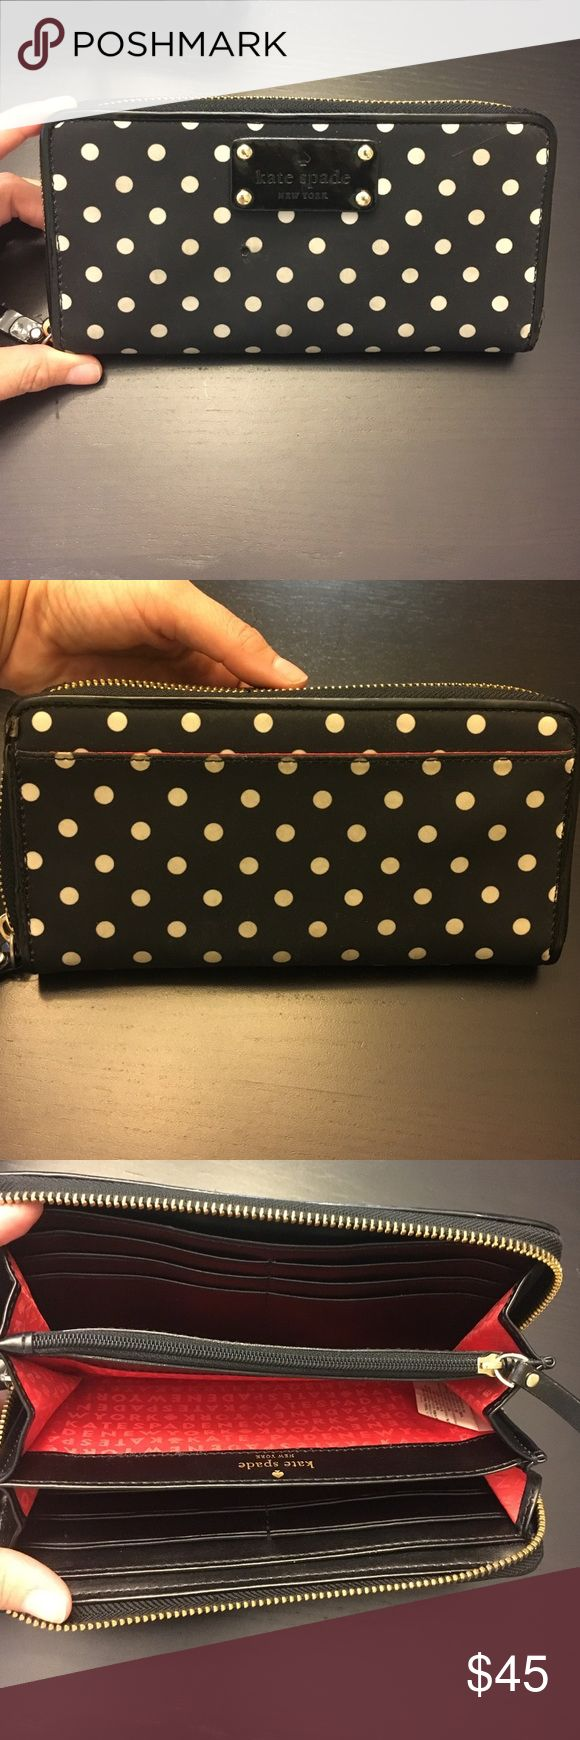 KATE SPADE polka dot zip up wallet! Great condition inside and out! The only thing is this wallet has a very small hole in the front that you can barely see because it's black but just to let you know that it's there! Such a cute wallet especially if you love polka dots! kate spade Bags Wallets